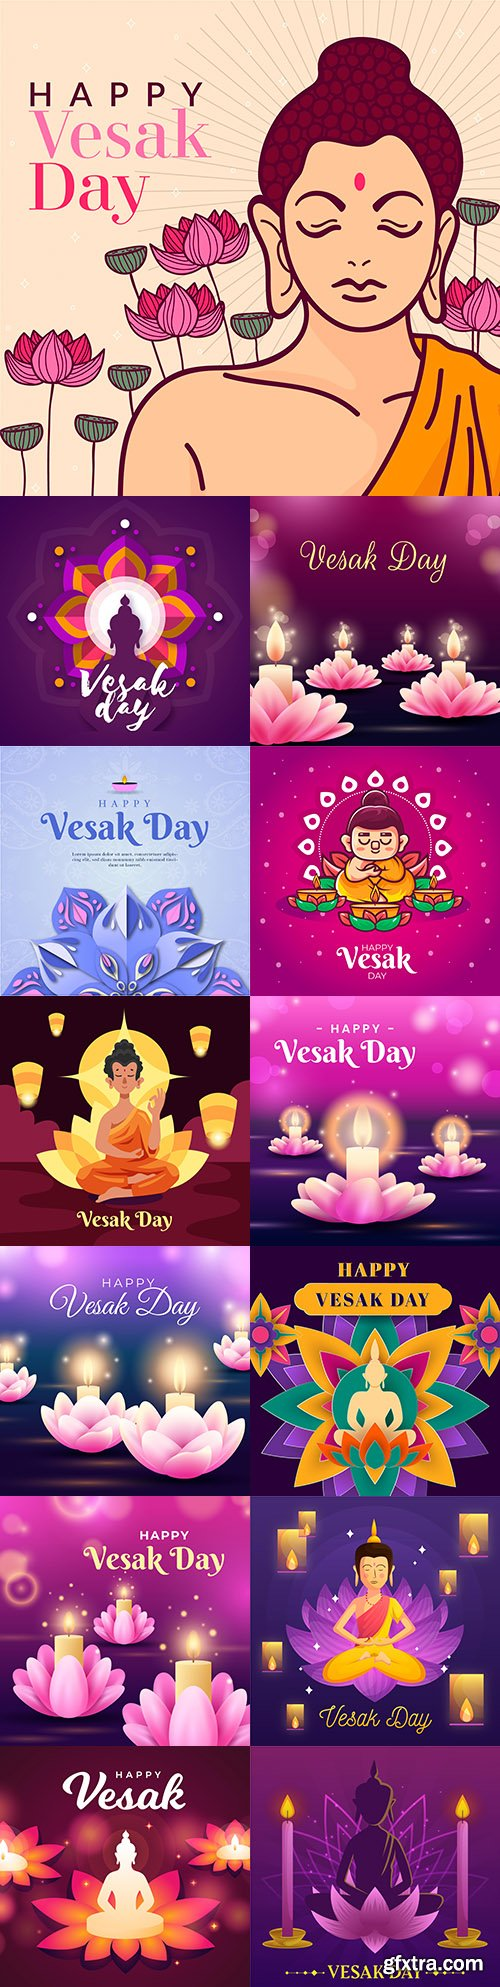 Vesak day festive illustration with flowers and candles